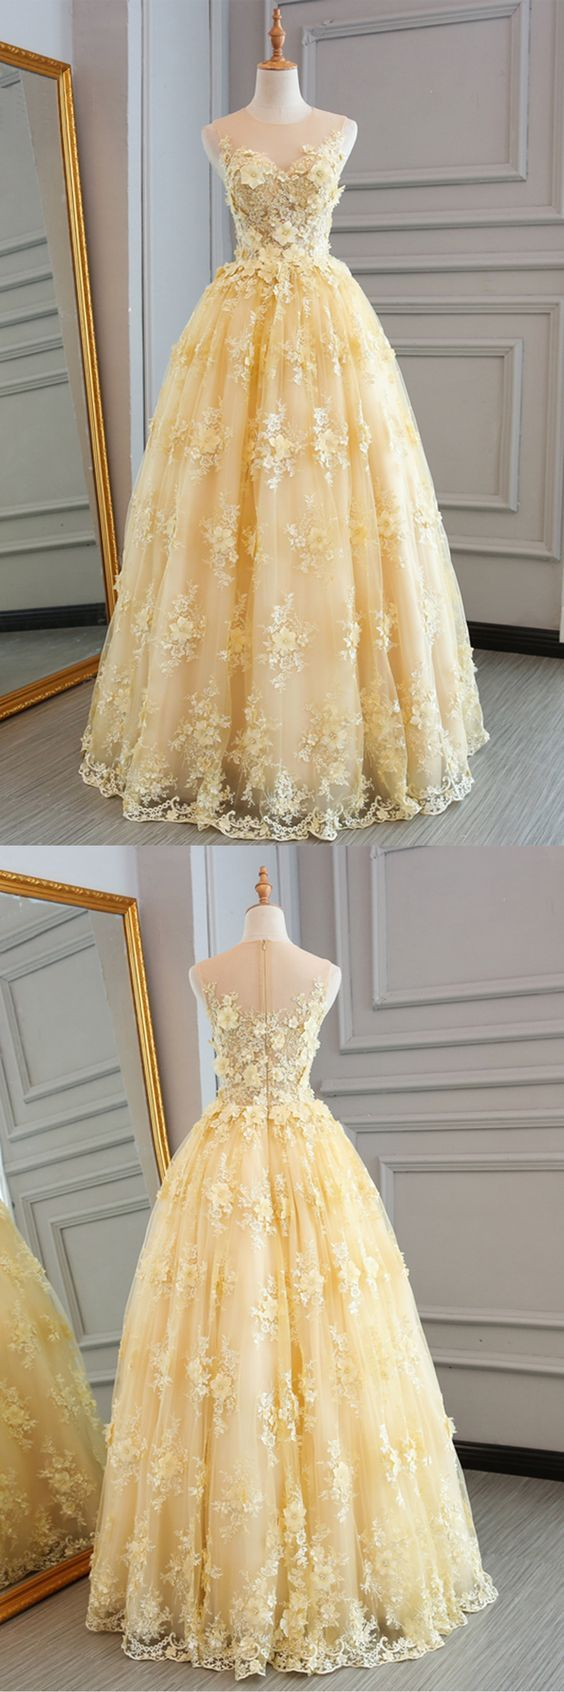 Yellow tulle lace prom dress, ball gown, 2018 prom dresses